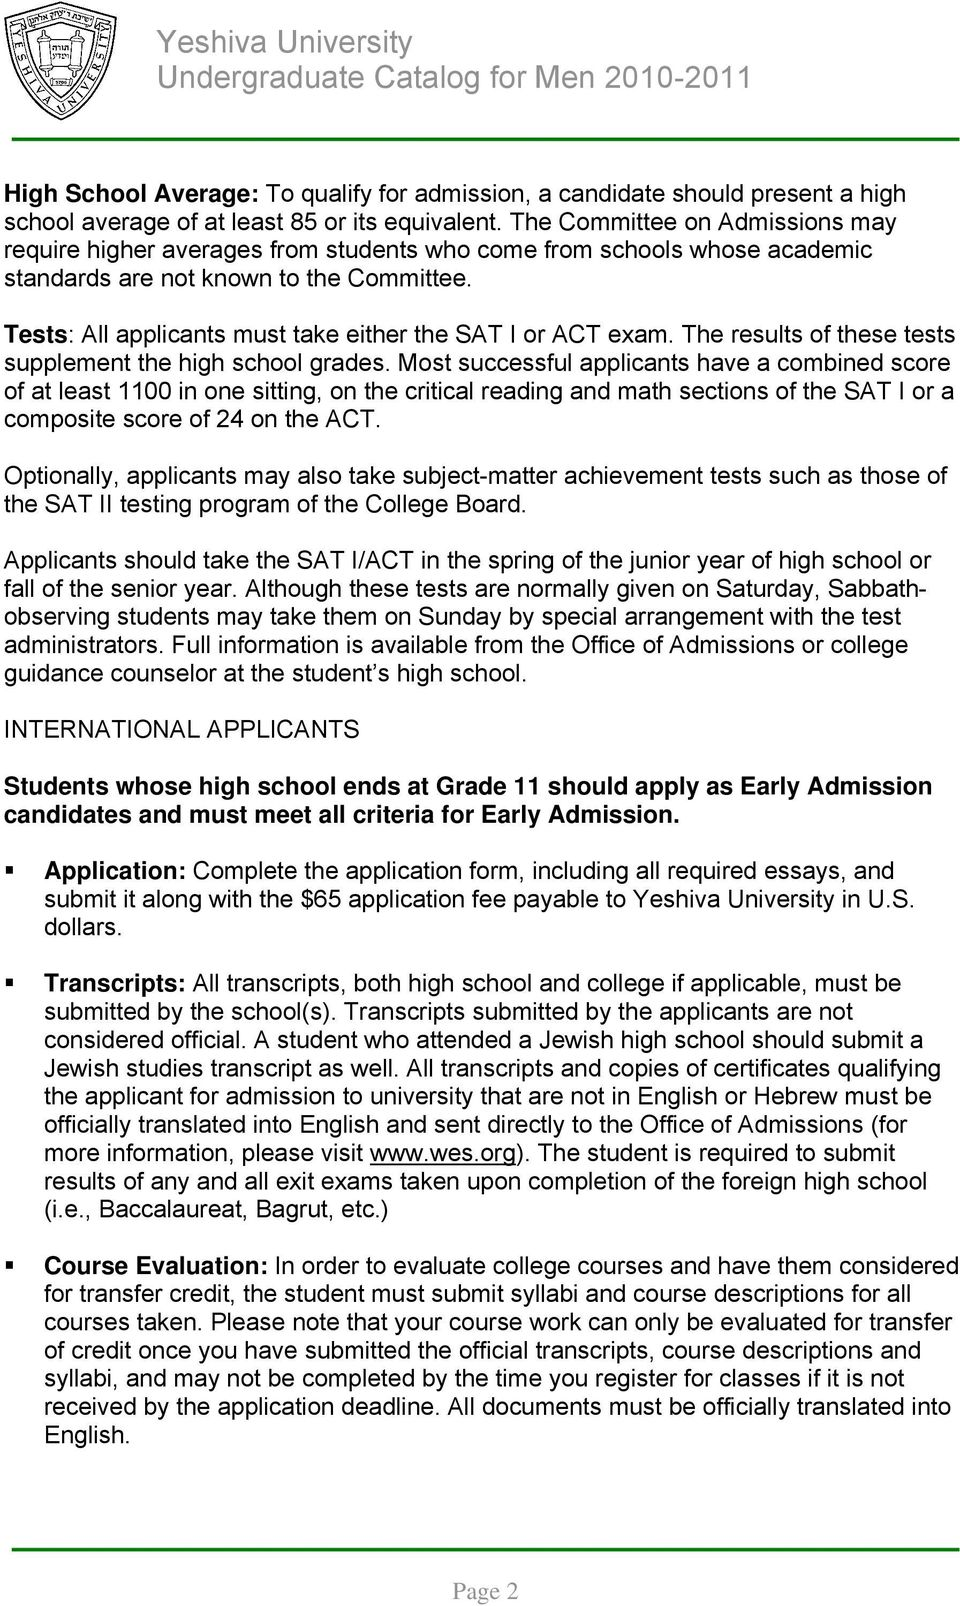 Tests: All applicants must take either the SAT I or ACT exam. The results of these tests supplement the high school grades.